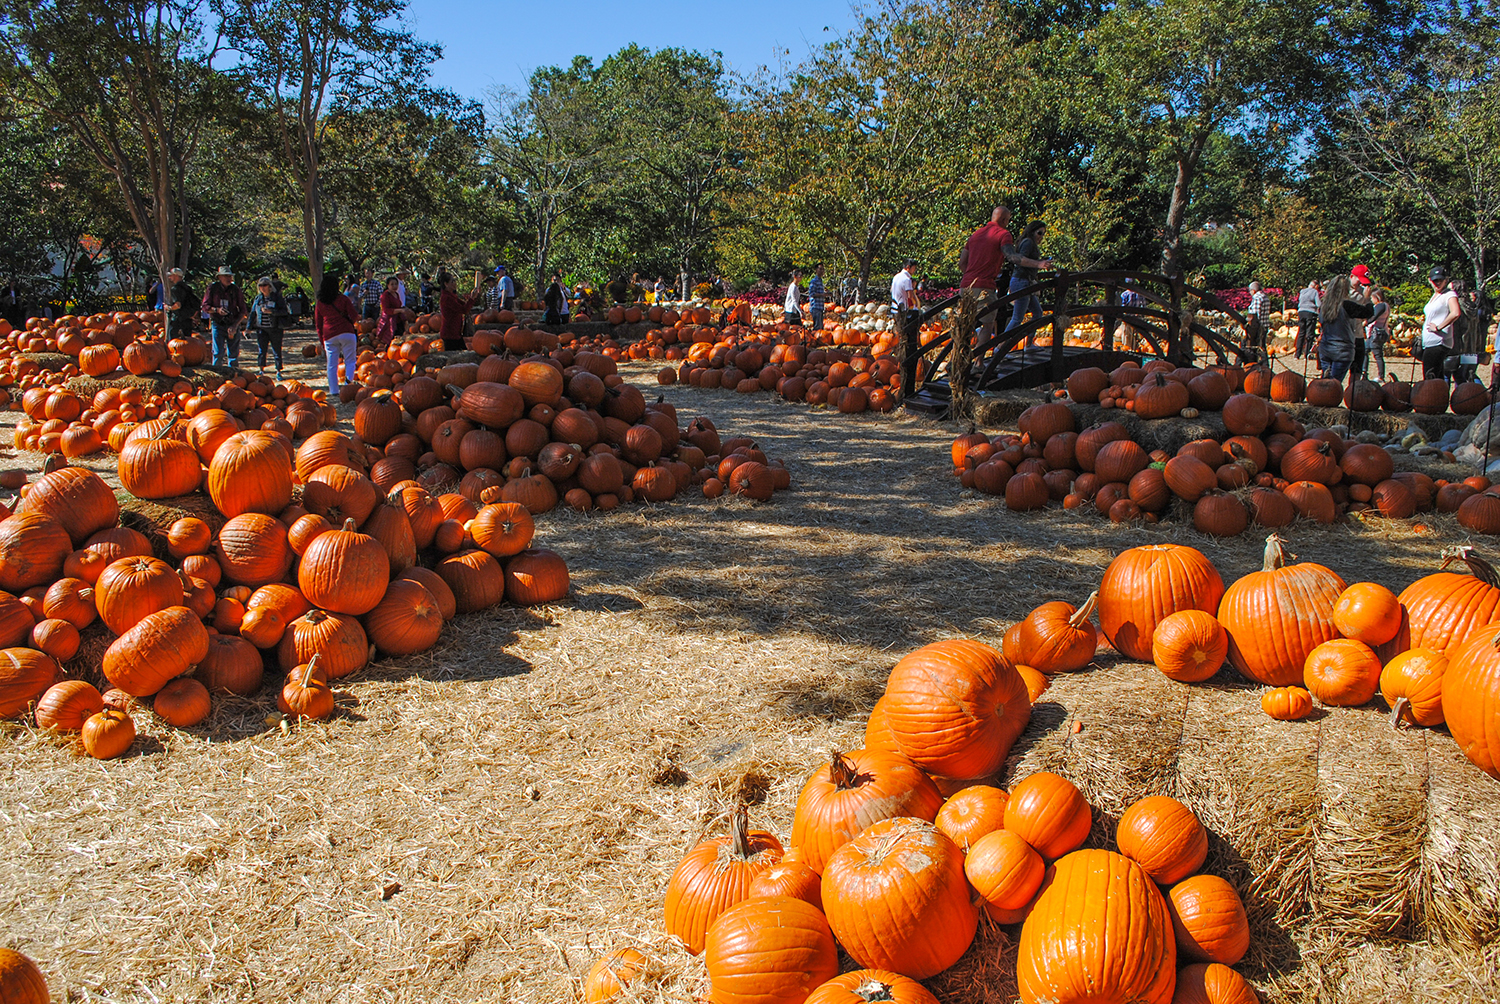 Pumpkins galore at the Dallas Arboretum